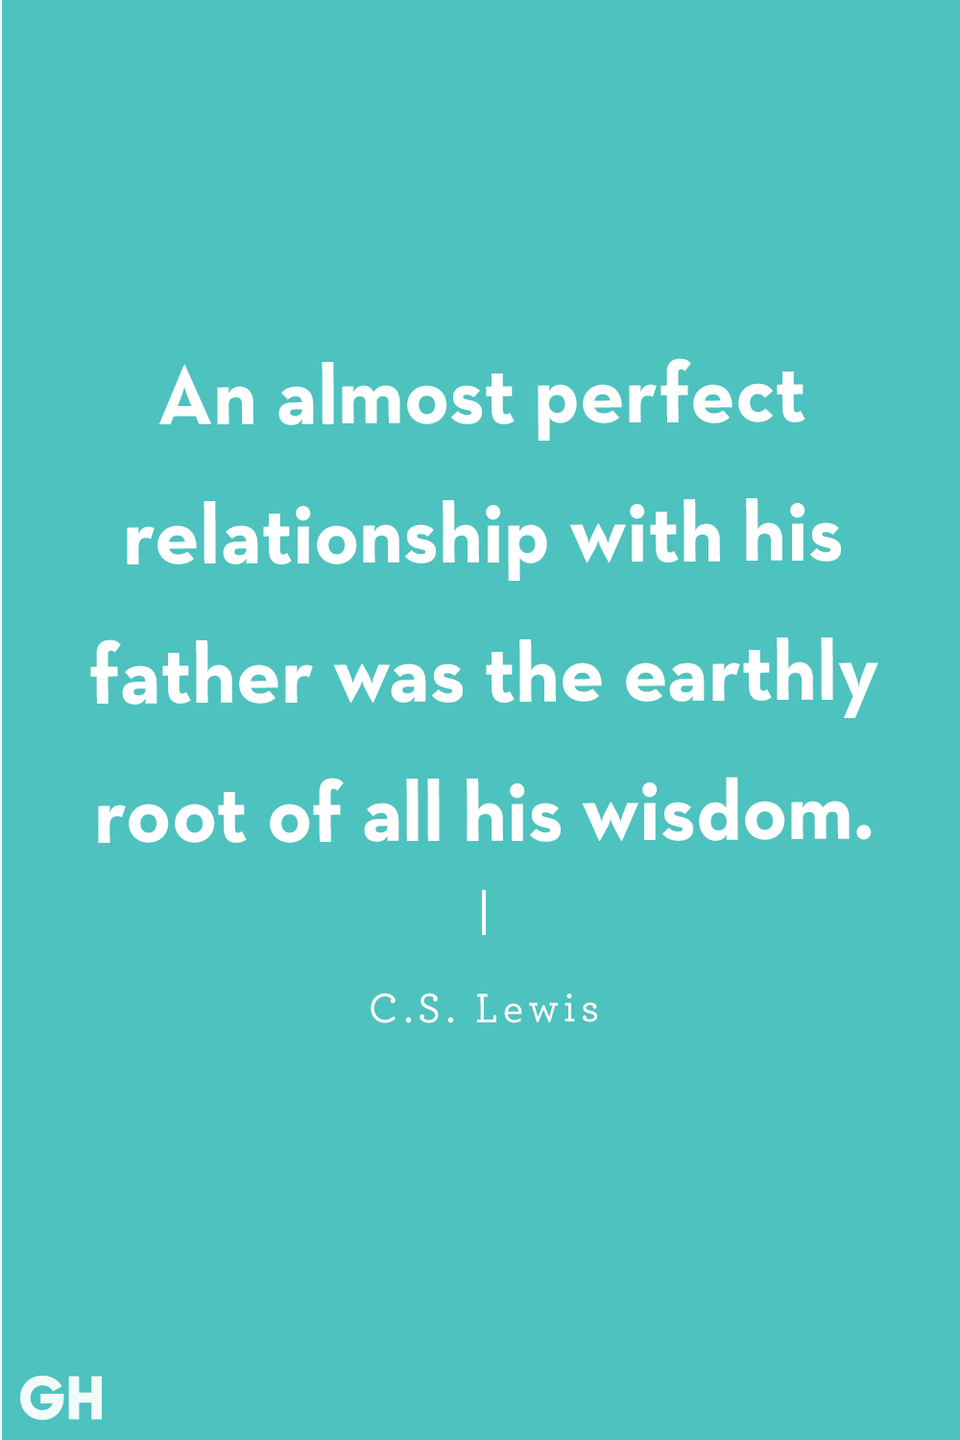 <p>An almost perfect relationship with his father was the earthly root of all his wisdom.</p>